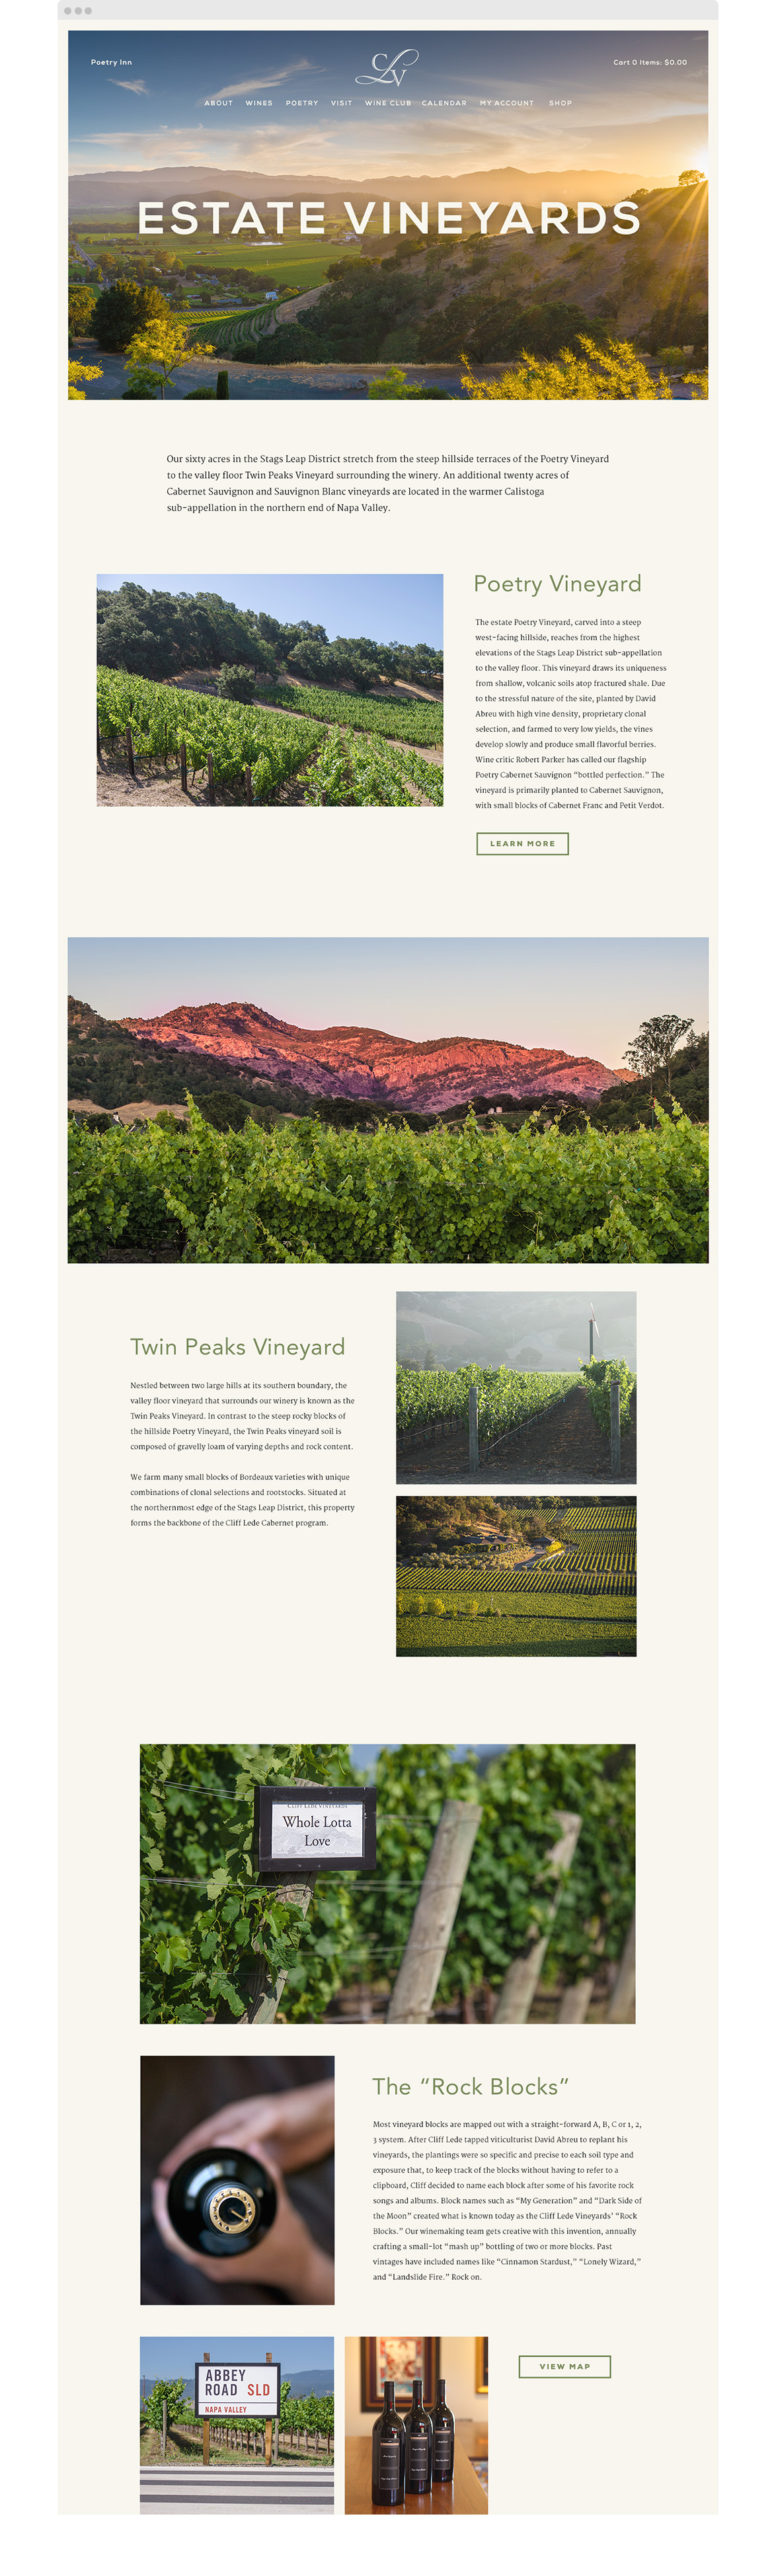 Kymera - Cliff Lede Vineyards